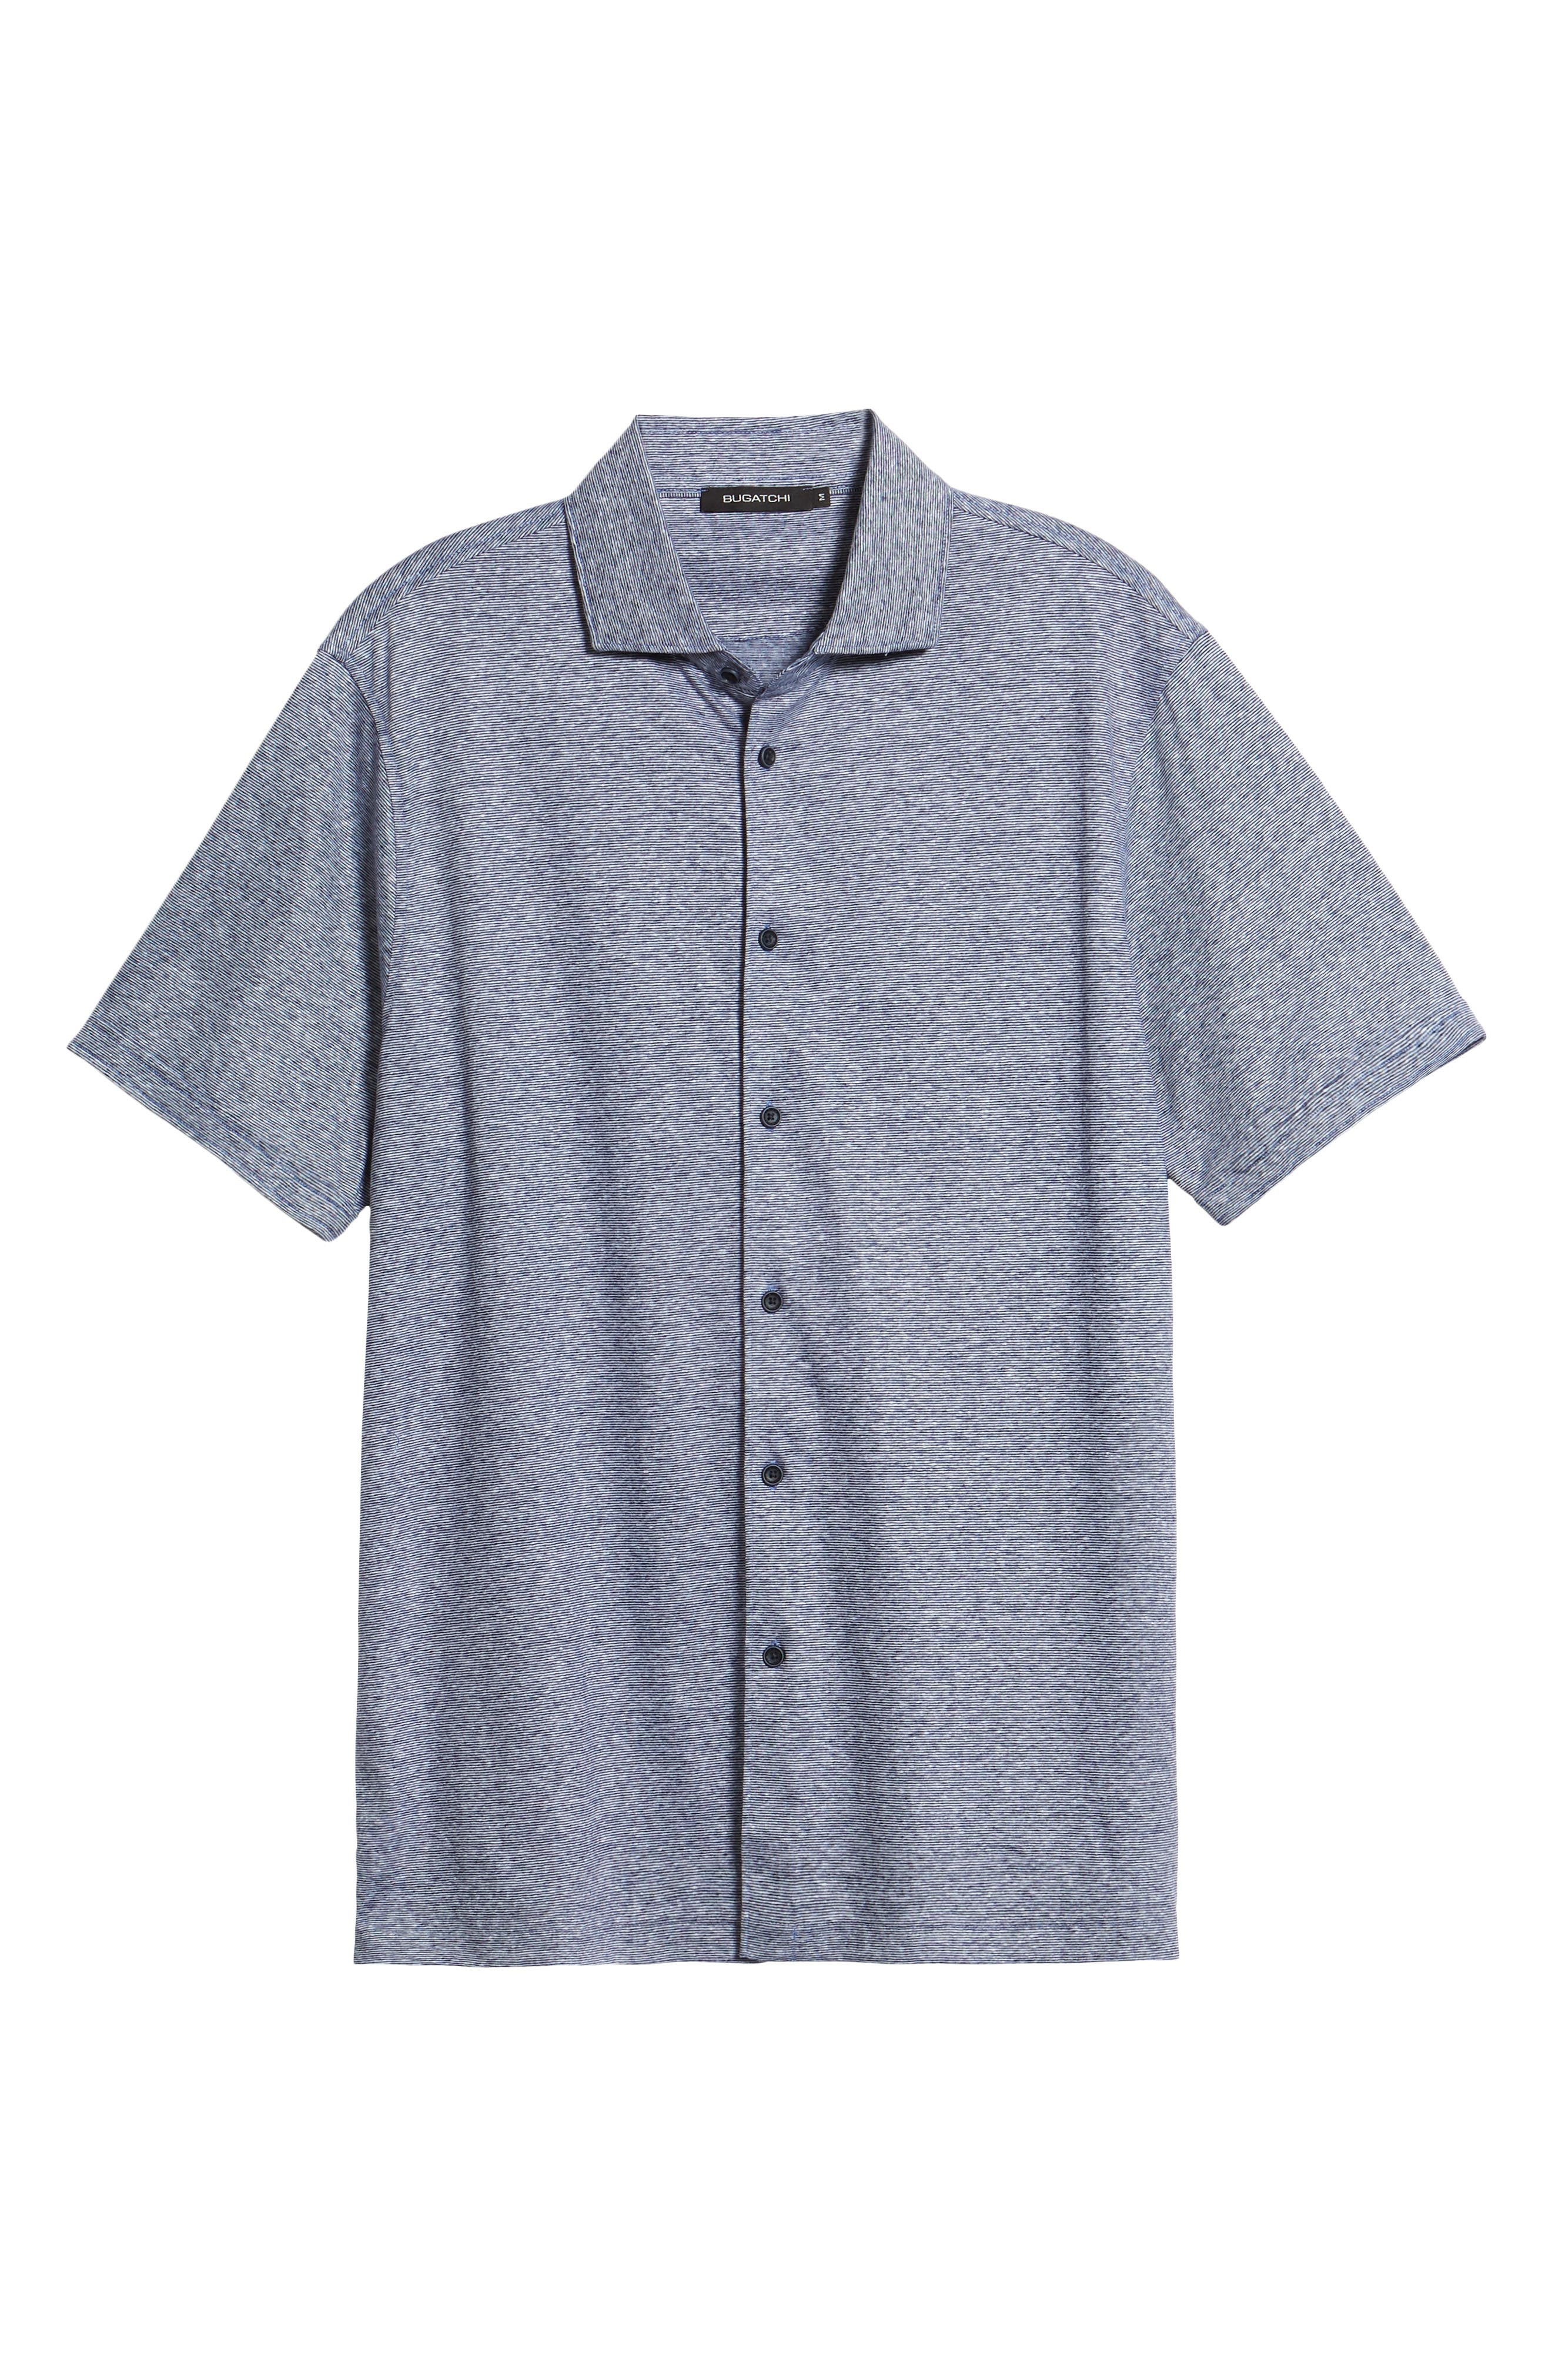 Knit Sport Shirt,                             Alternate thumbnail 6, color,                             411